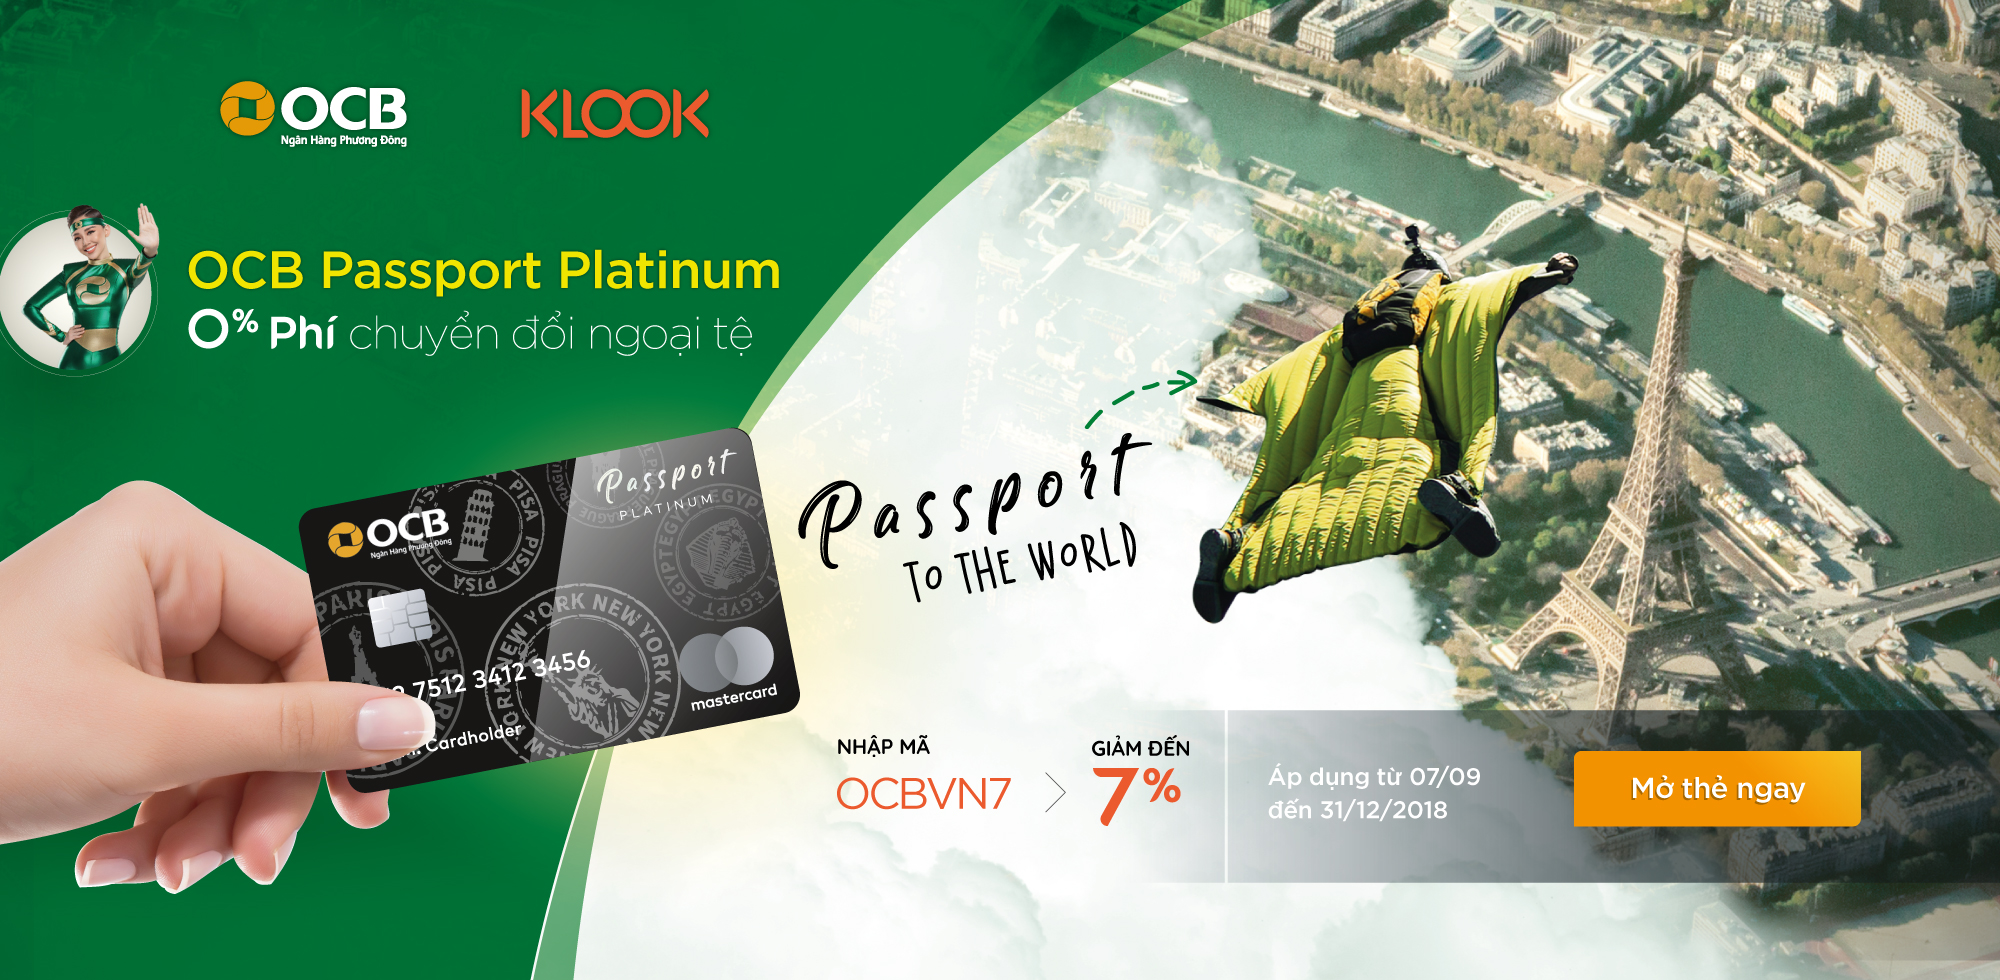 ocb-passport-platinum-klook